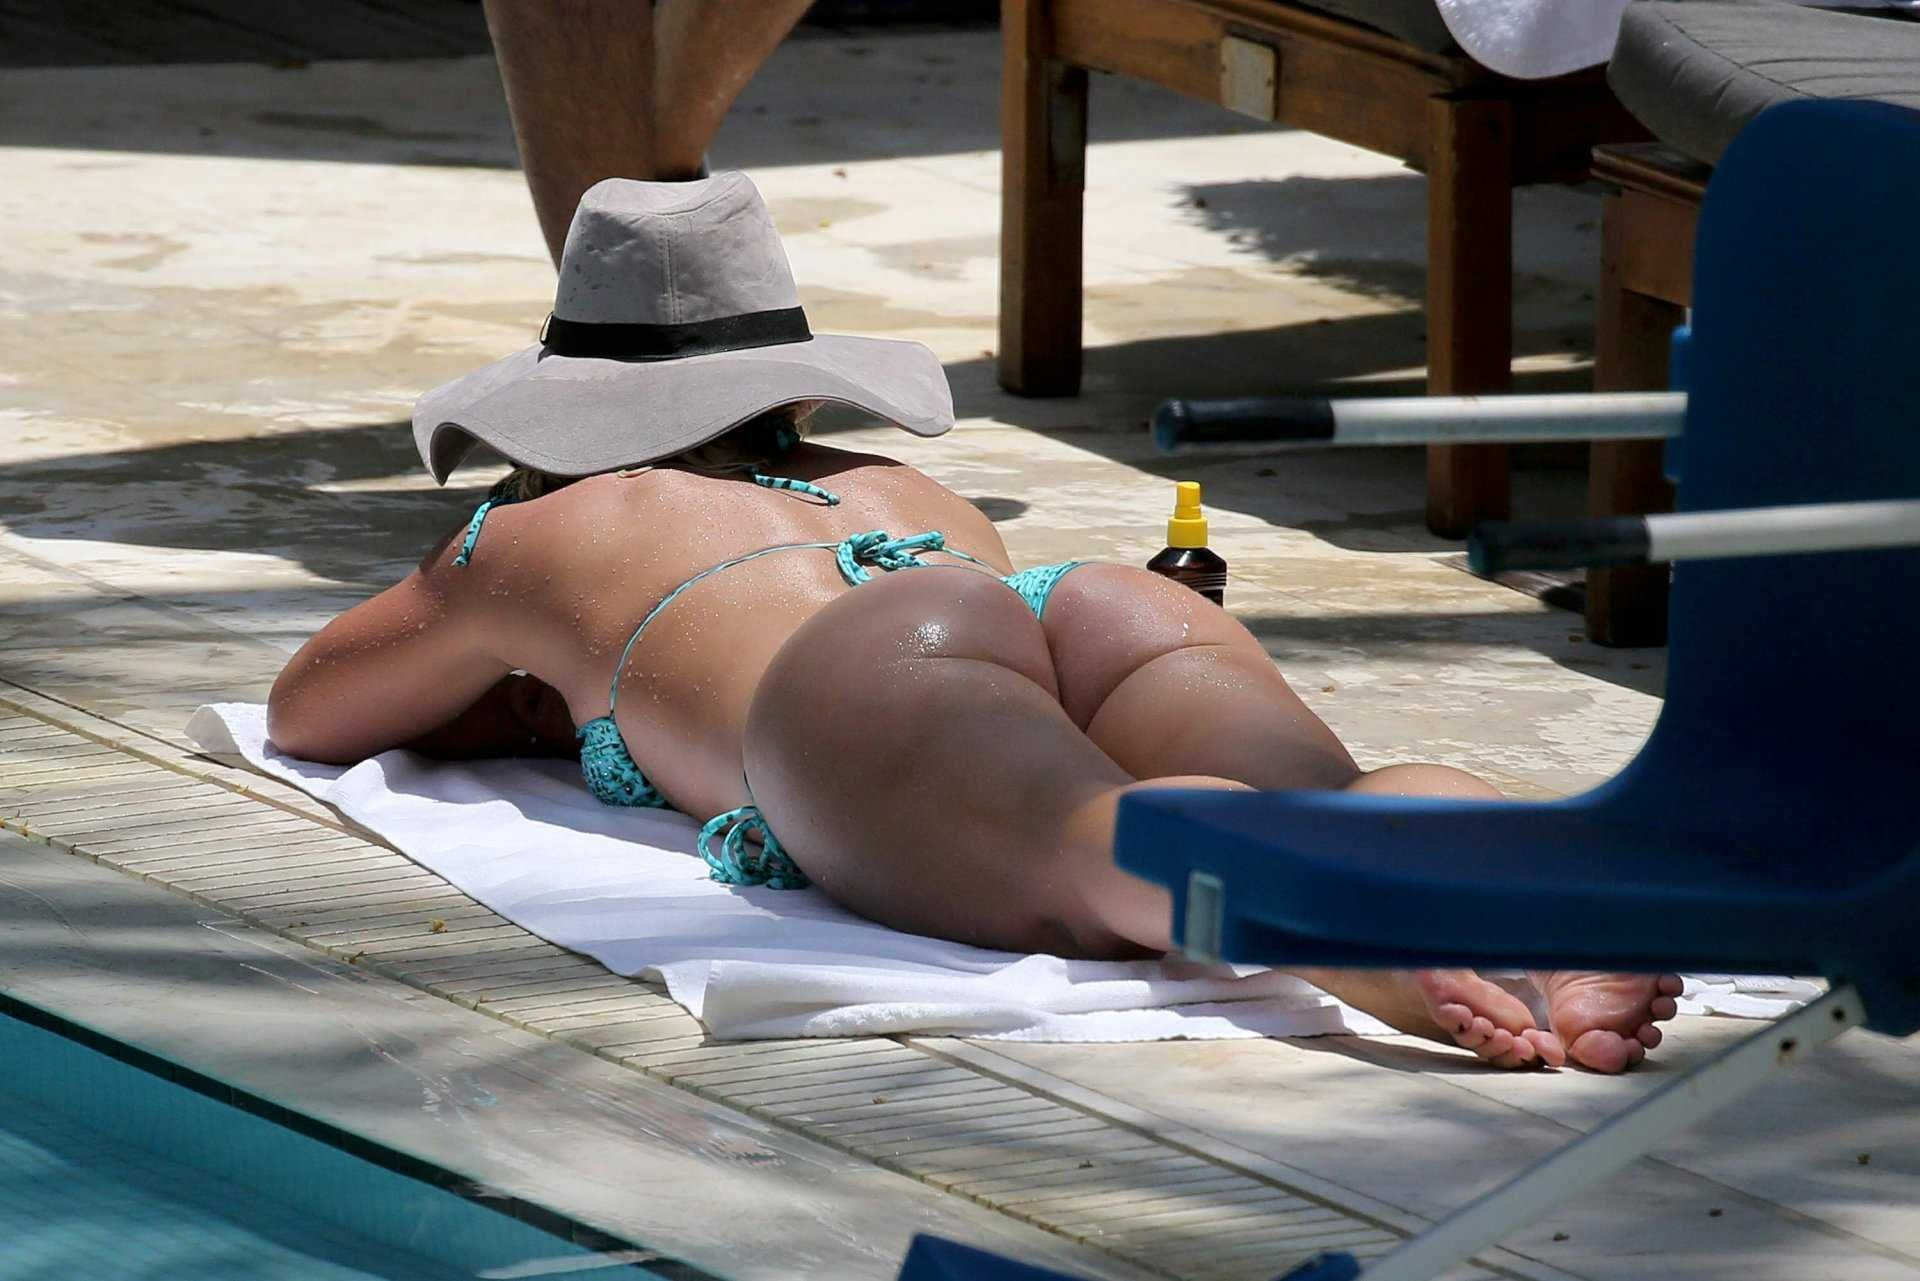 Britney spears ass pics